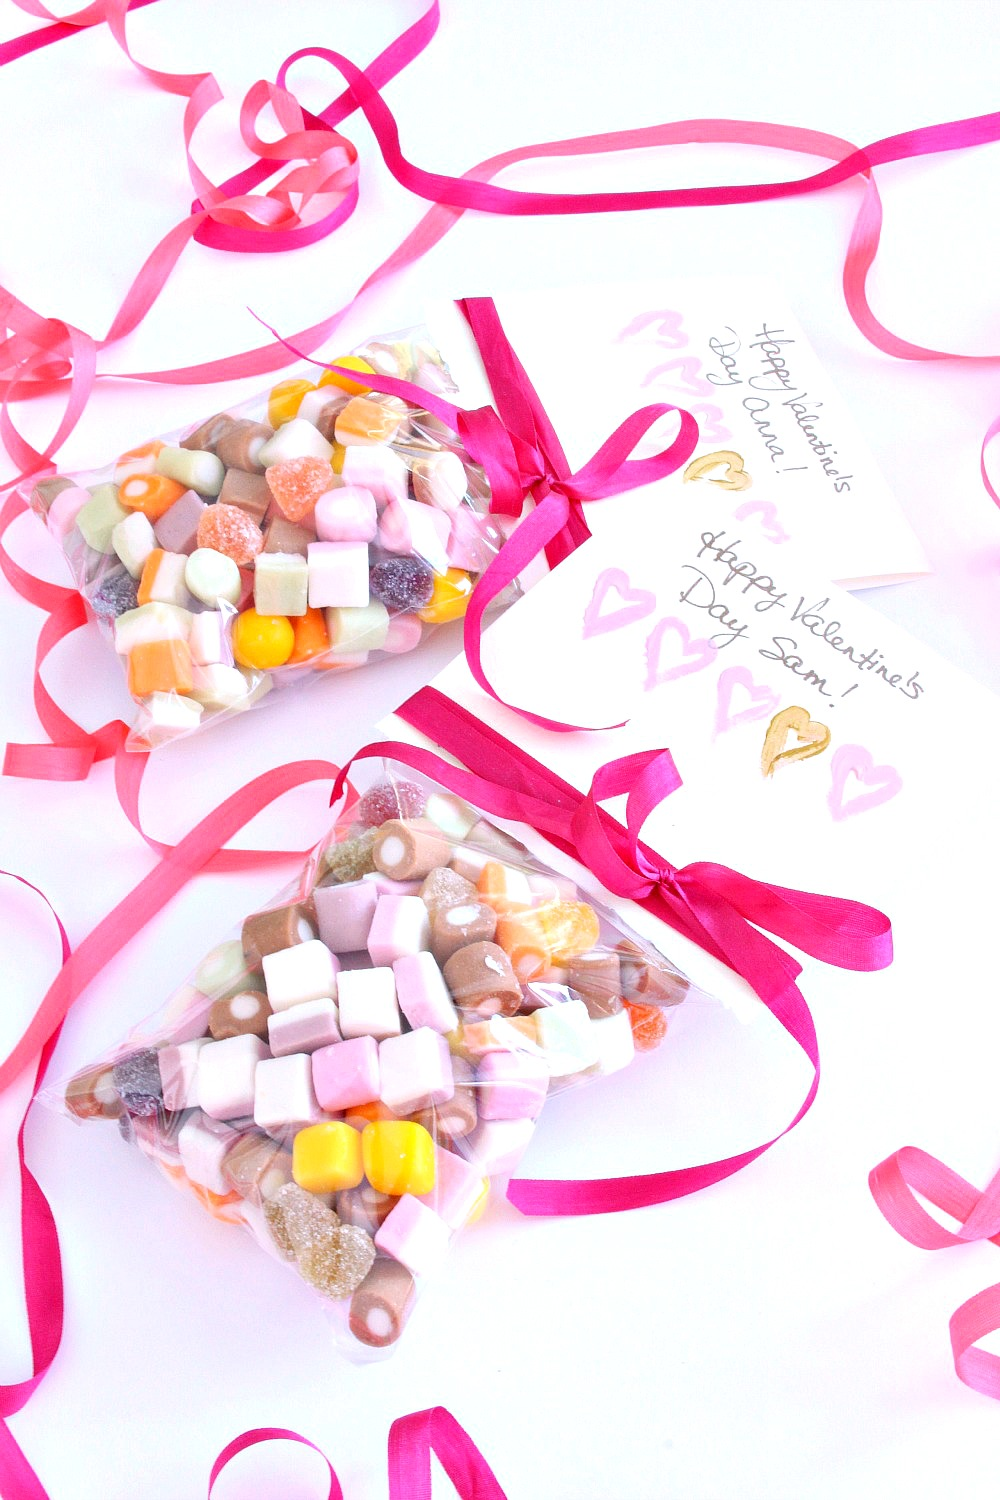 Easy DIy Valentine's Day Card and Treat Bag in One #valentinesday #dollymix #kidscrafts